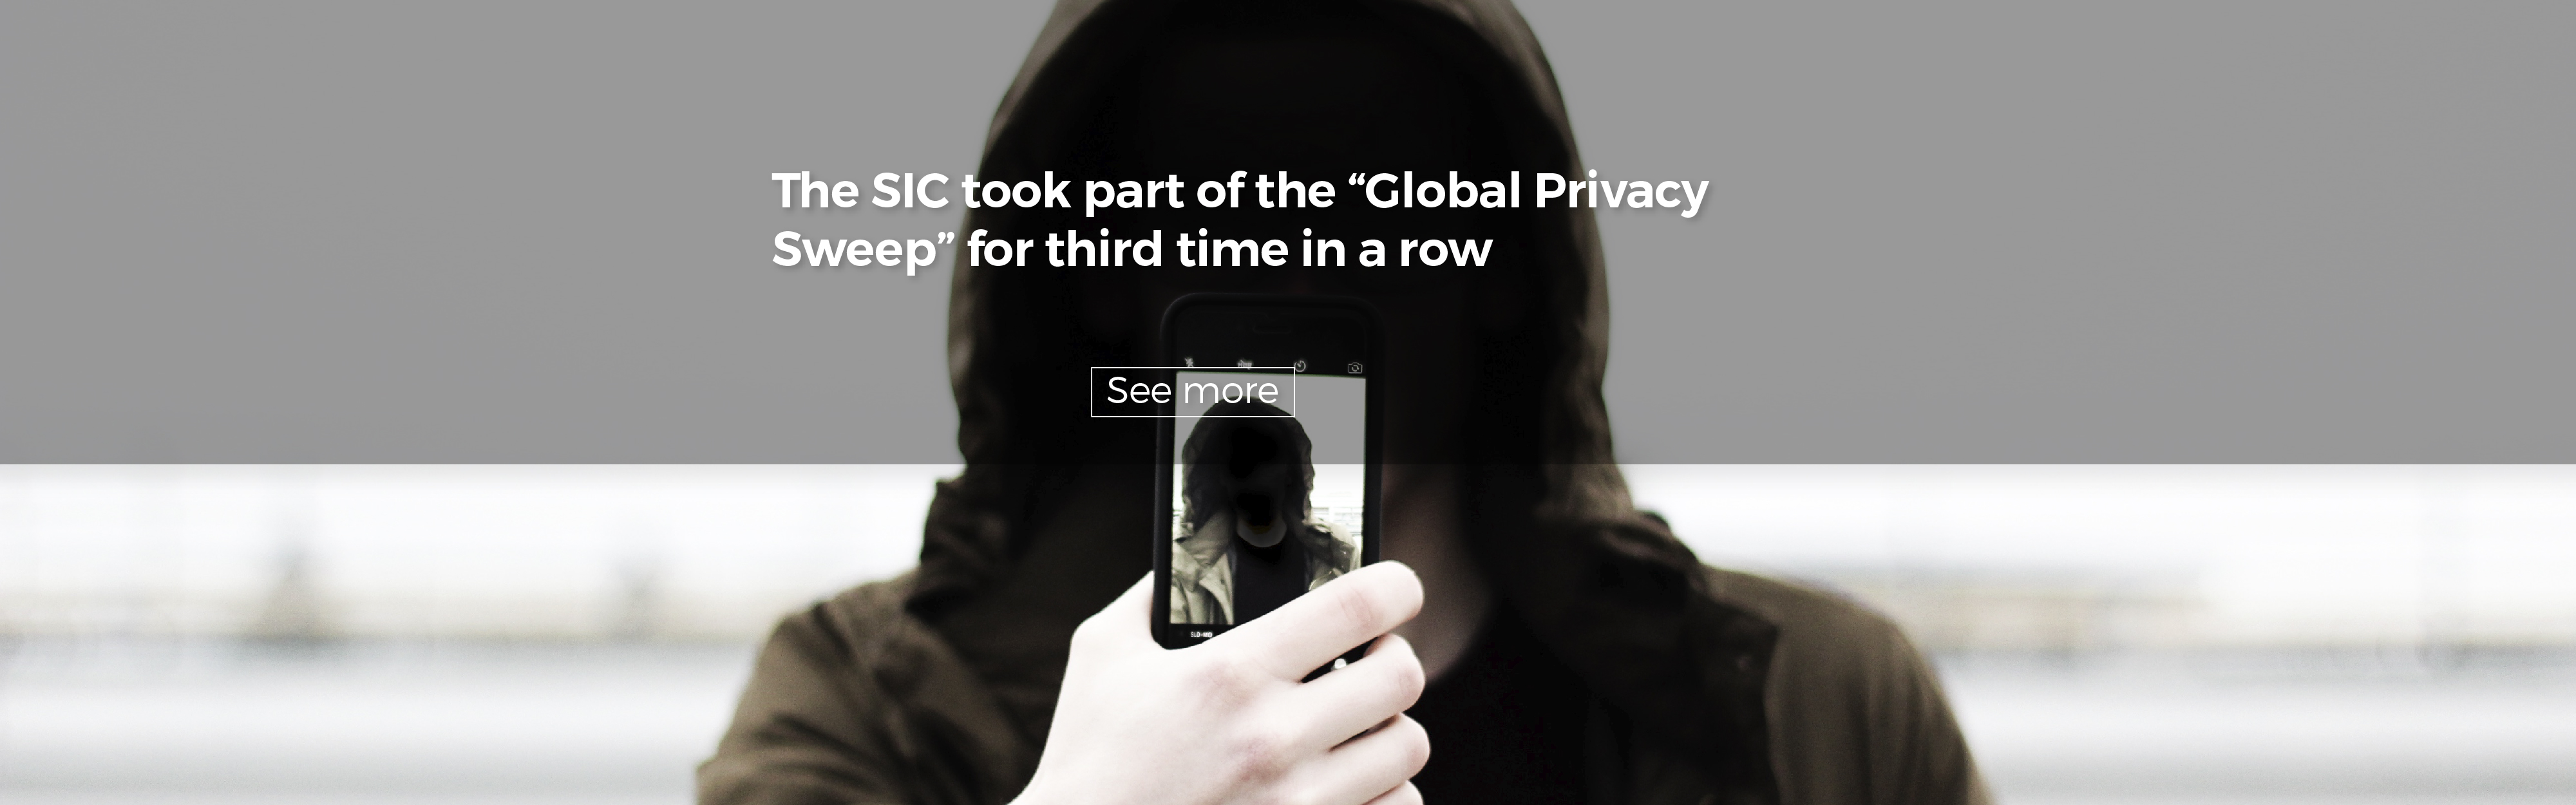 """The SIC took part of the """"Global Privacy Sweep"""" for third time in a row"""